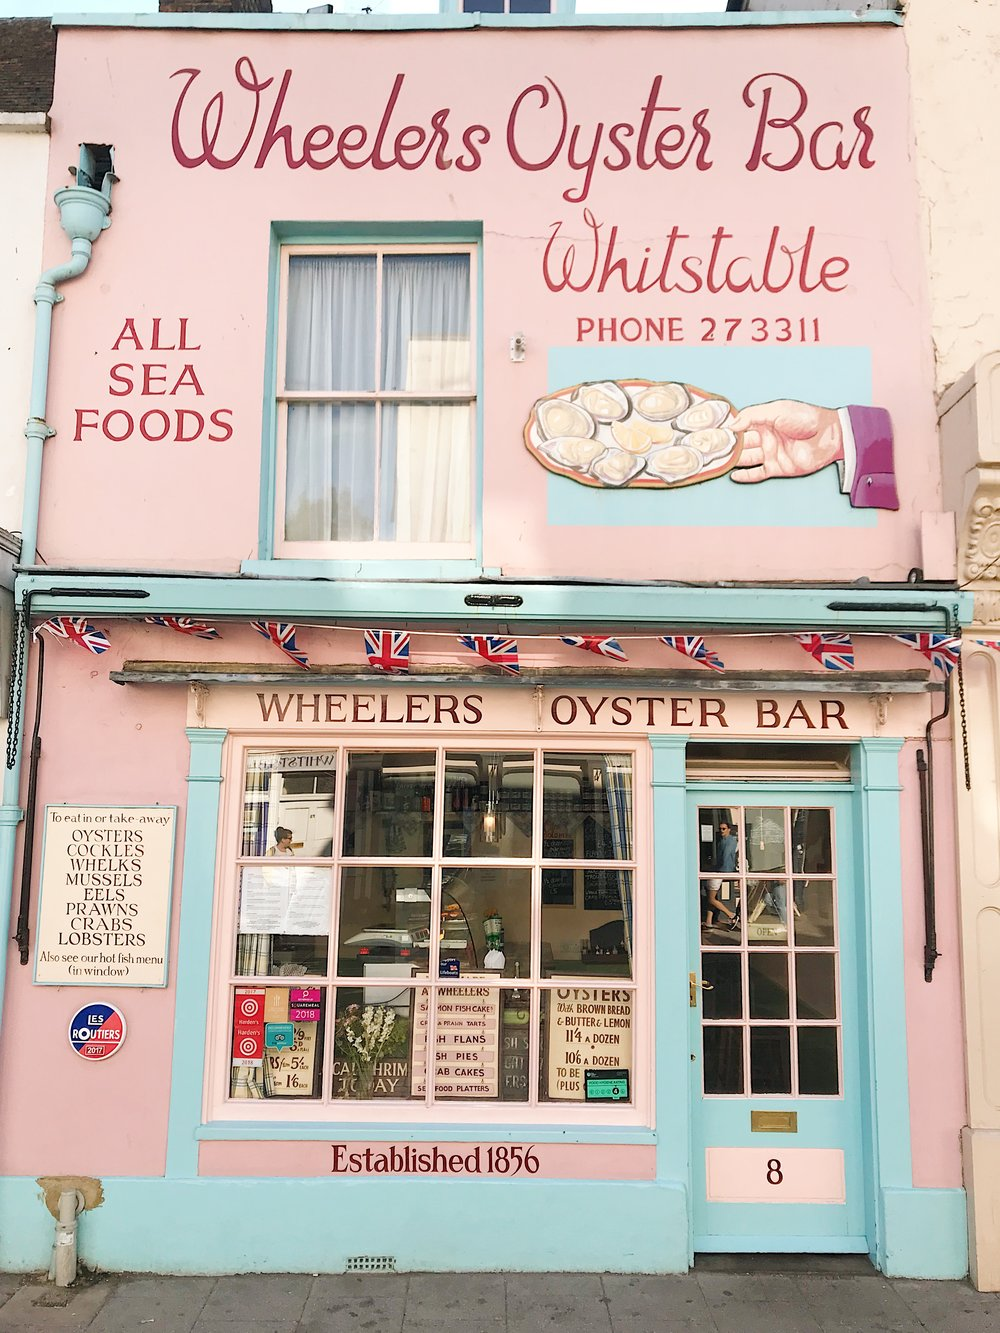 Whistatble Wheelers Oyster.JPG